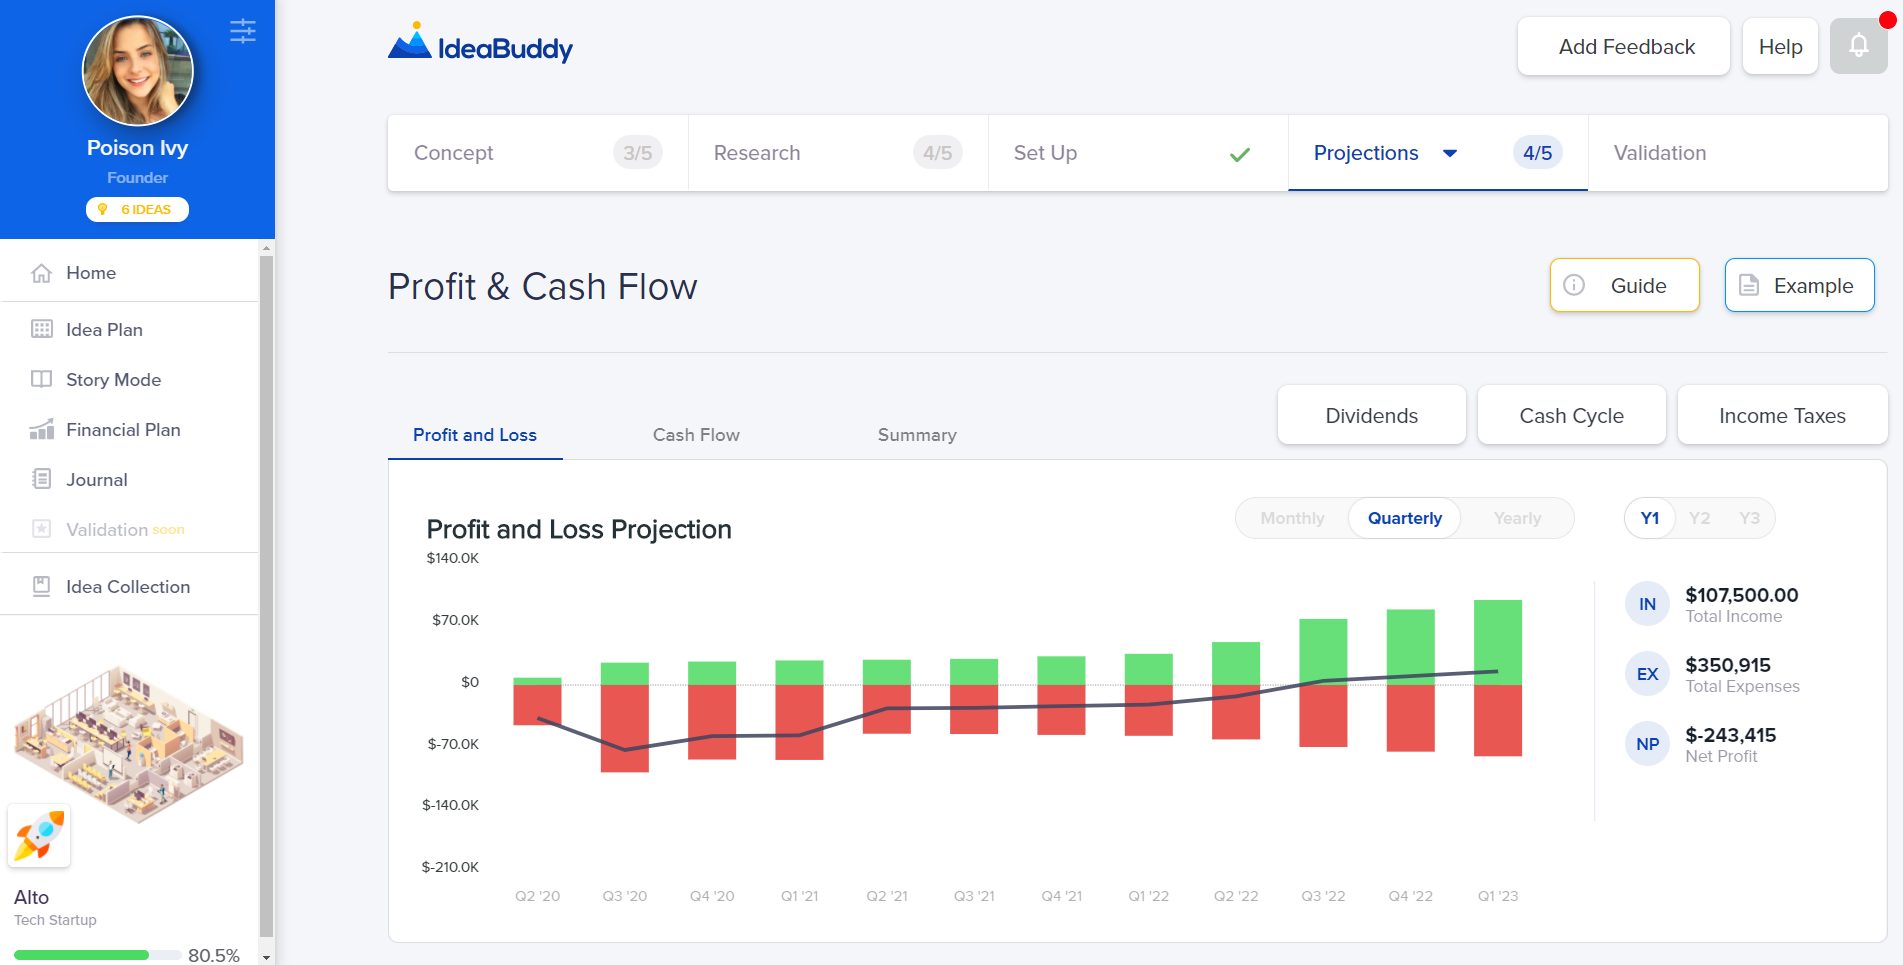 Profit and loss projection - Snapshot from IdeaBuddy